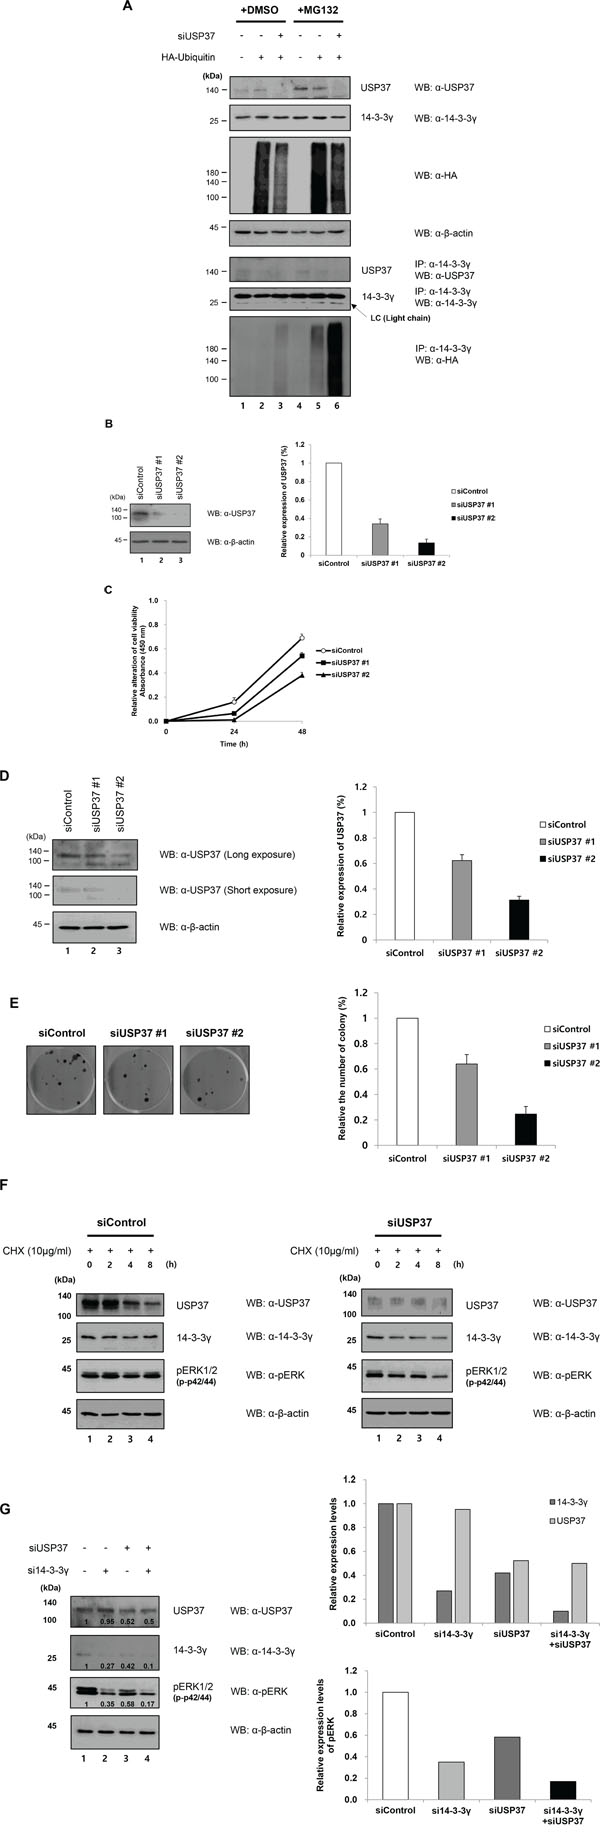 Knock-down effect of USP37 in cancer cells.